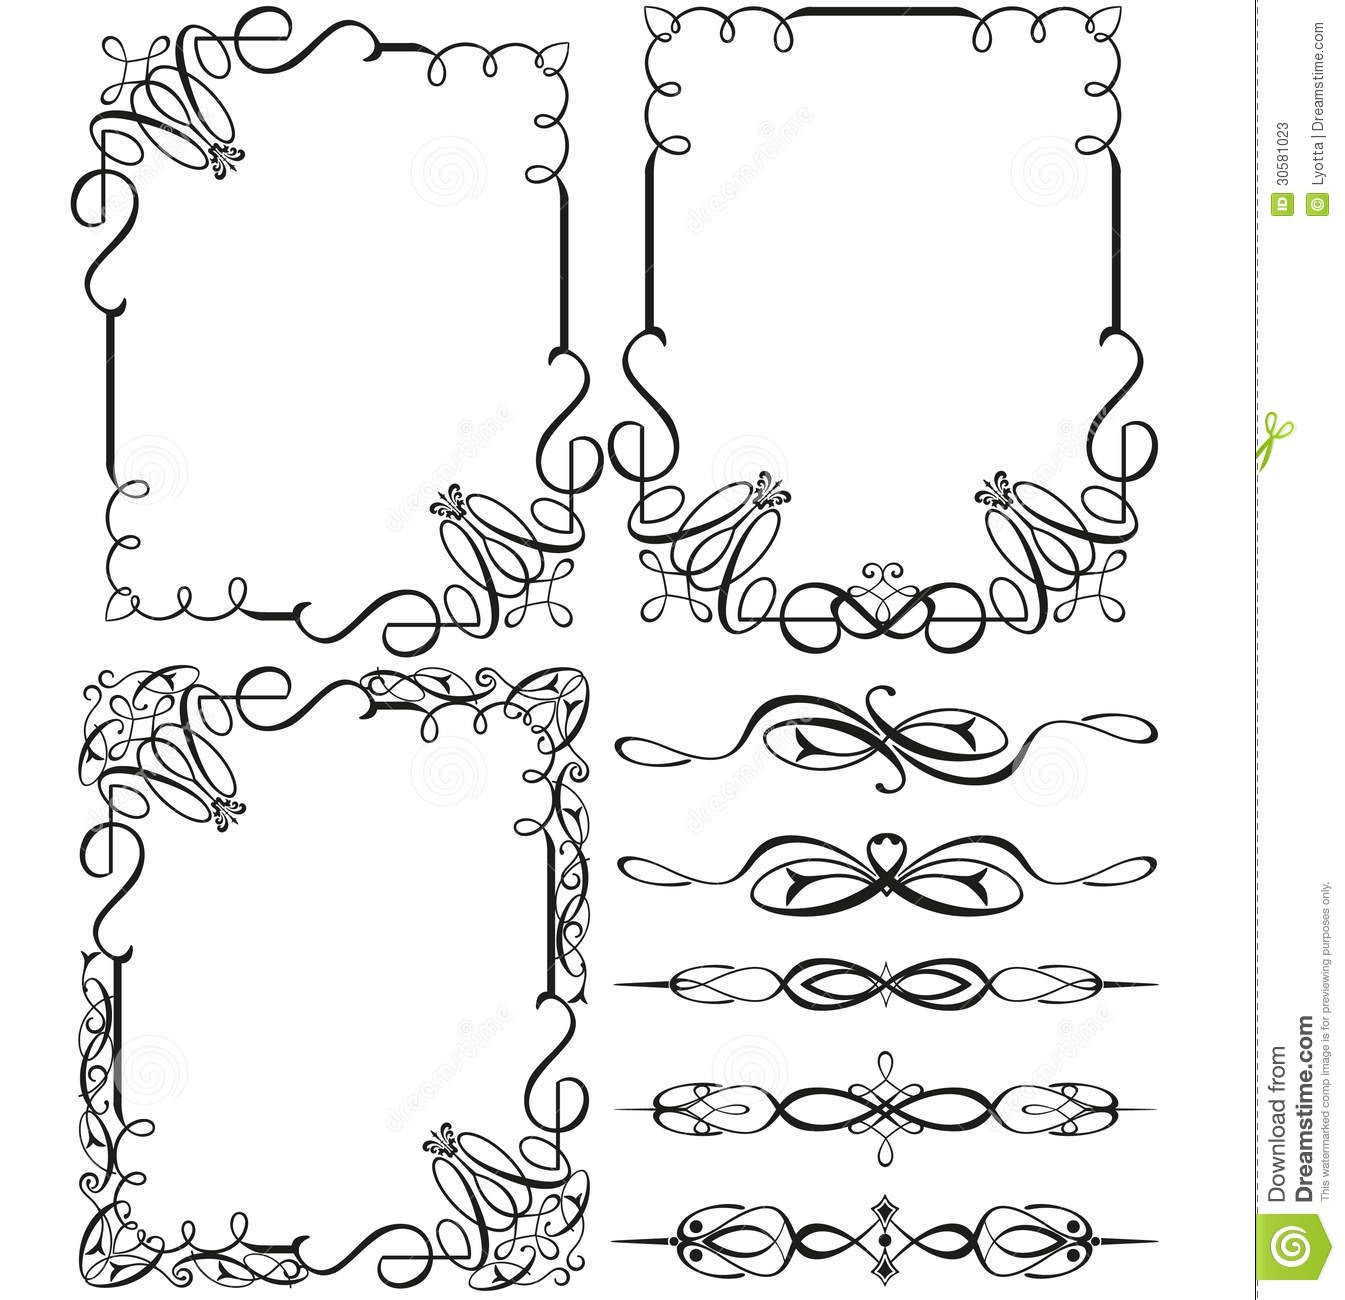 Vintage Calligraphic Frames And Elements Stock Vector